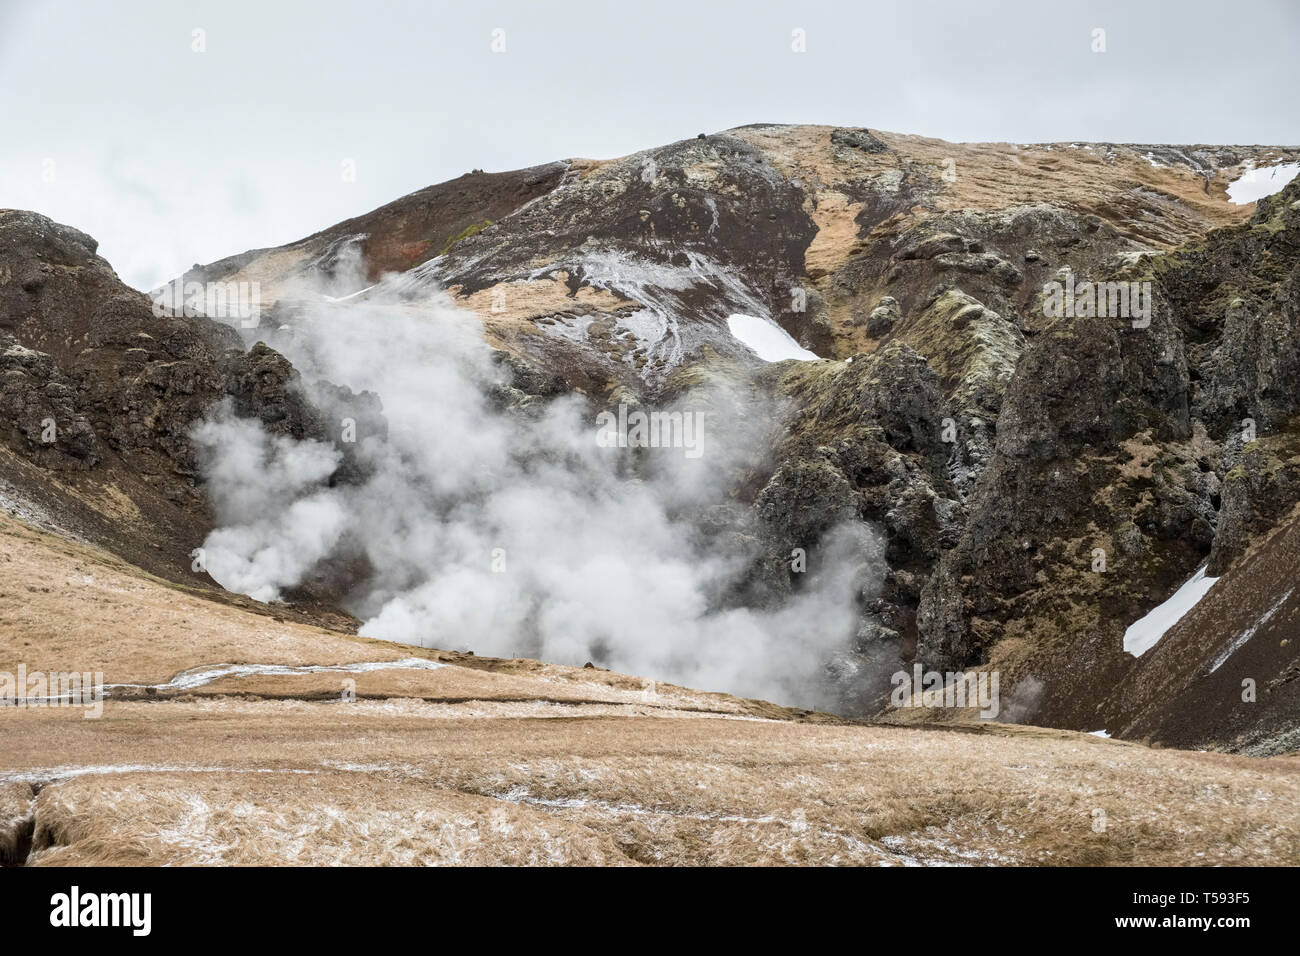 Near Hveragerði, Iceland. Steam rising from geothermal hot springs in the Reykjadalur valley Stock Photo